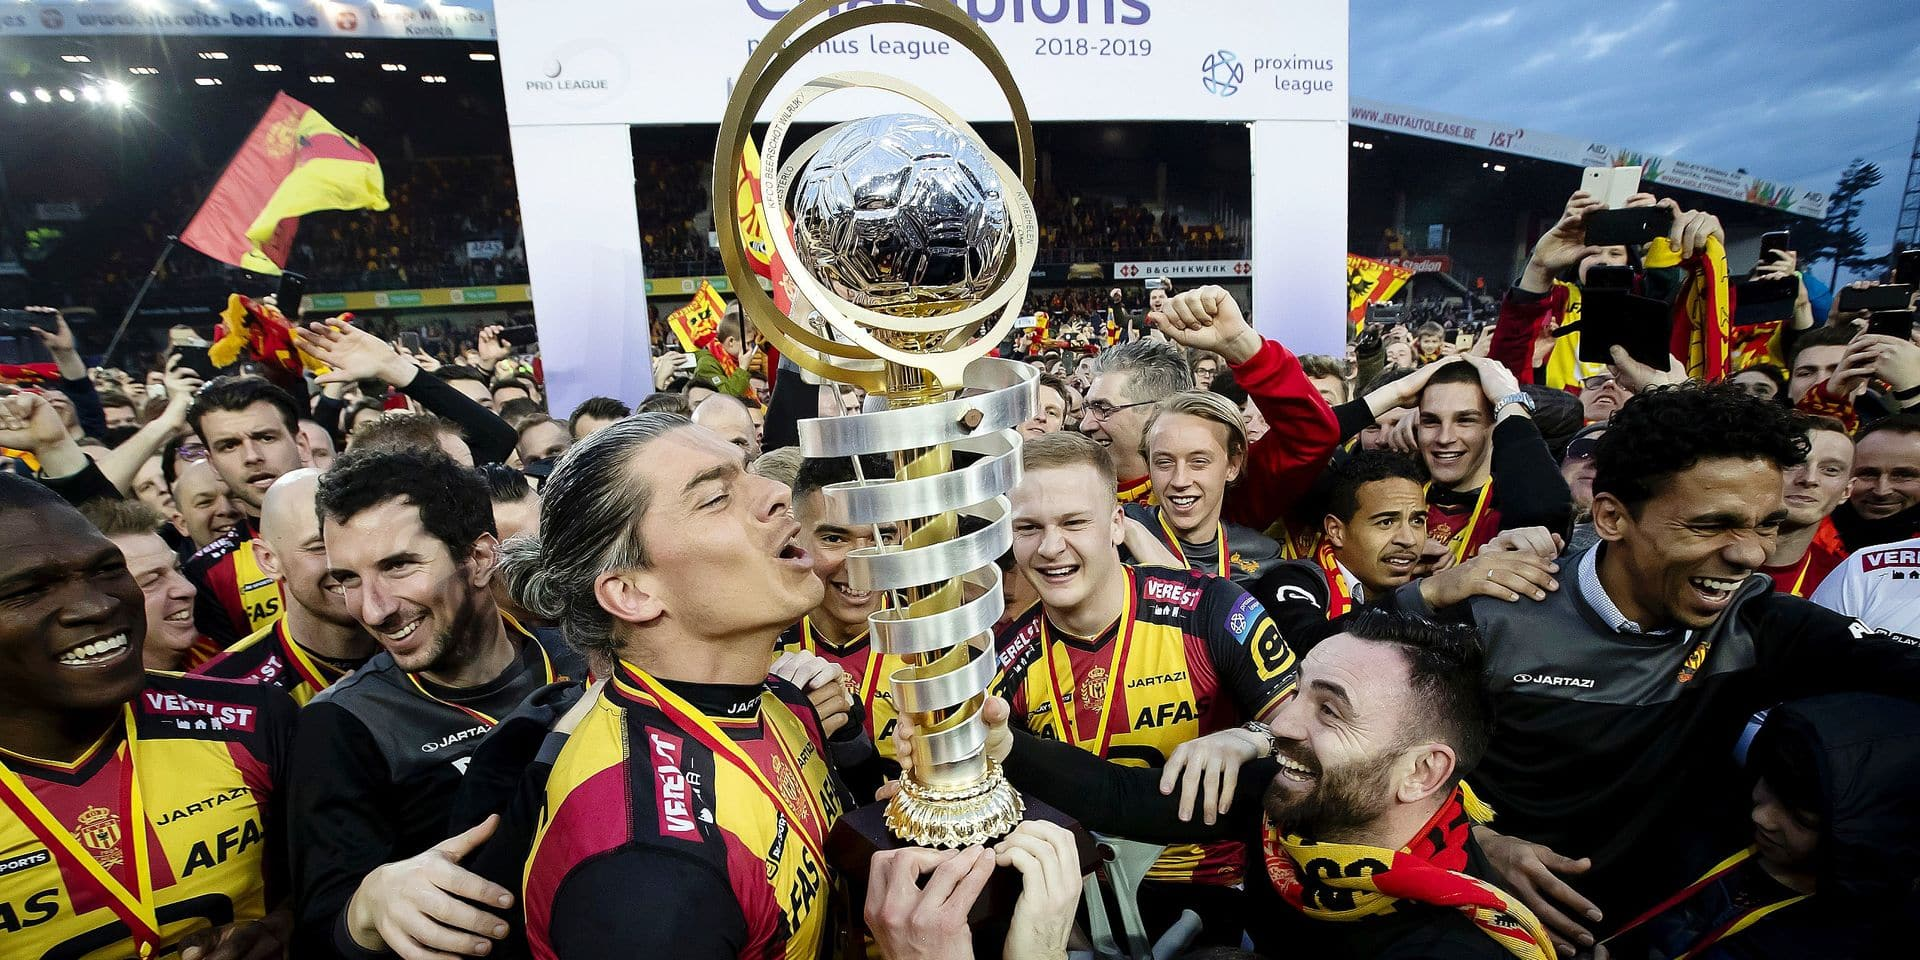 Mechelen's Seth De Witte and Mechelen's Onur Kaya celebrate with the cup during the champion celebrations for KV Mechelen, after winning the soccer game between KV Mechelen and Beerschot Wilrijk, the return leg match of the division 1B Proximus League competition final of the Belgian soccer championship, Saturday 16 March 2019, in Mechelen. BELGA PHOTO KRISTOF VAN ACCOM